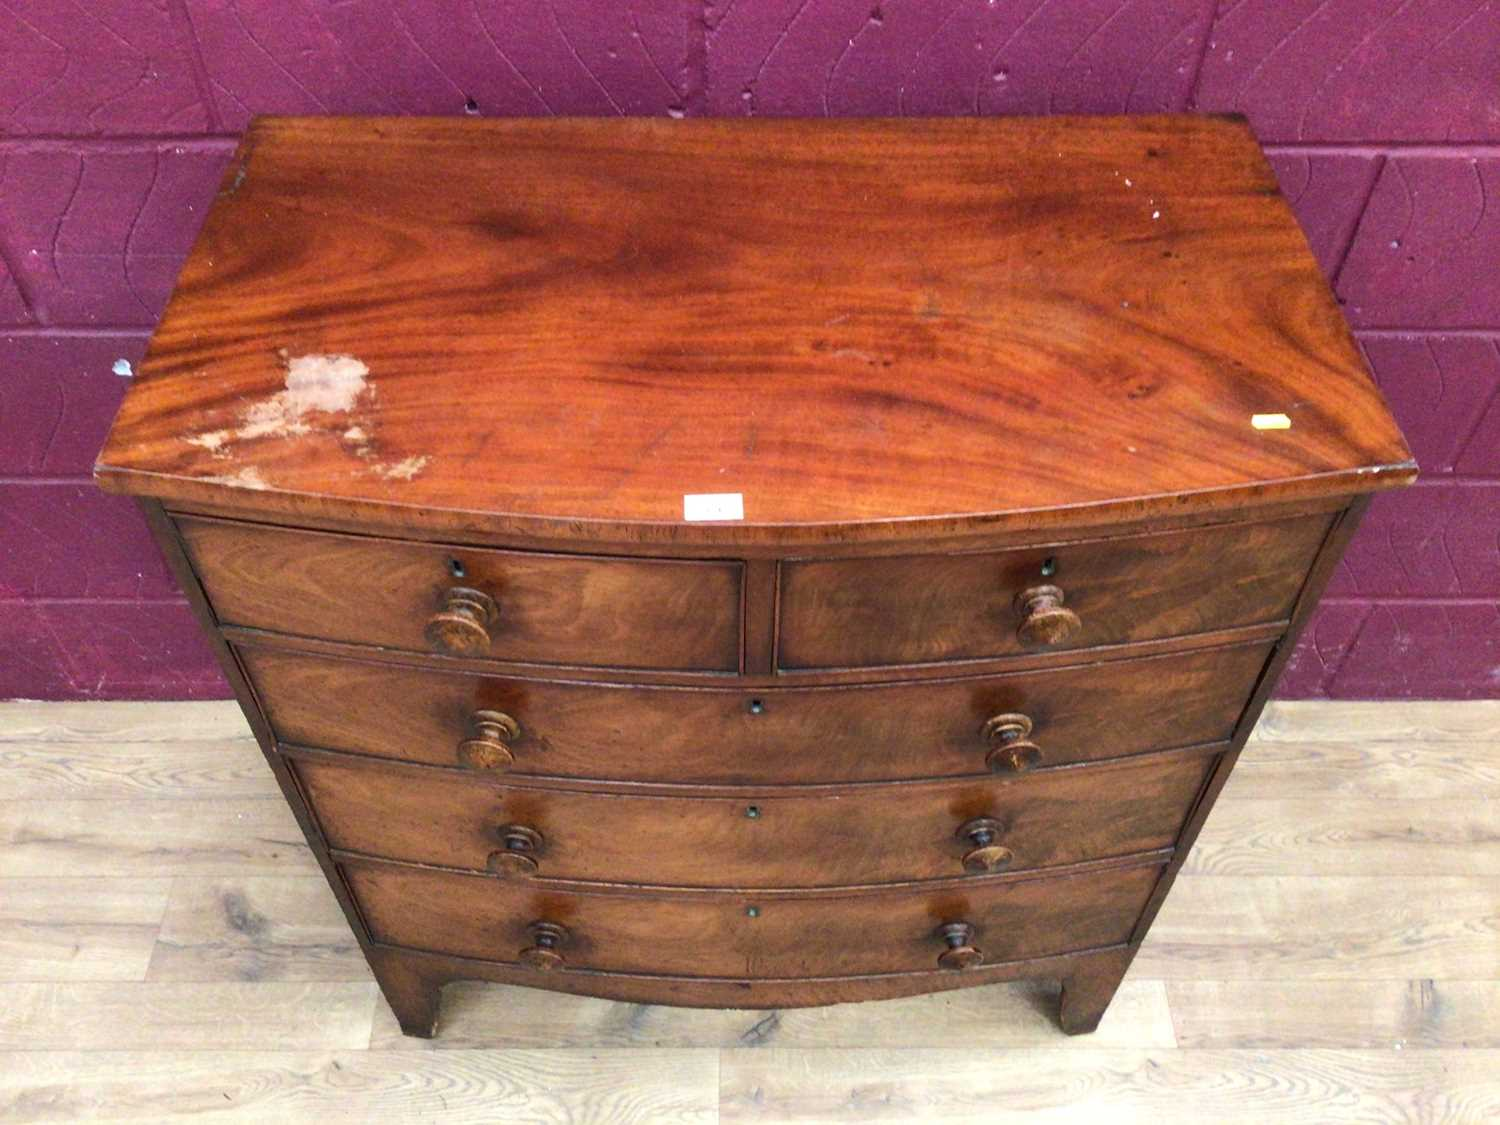 19th century mahogany bowfront chest of two short and three long graduated drawers - Image 2 of 5